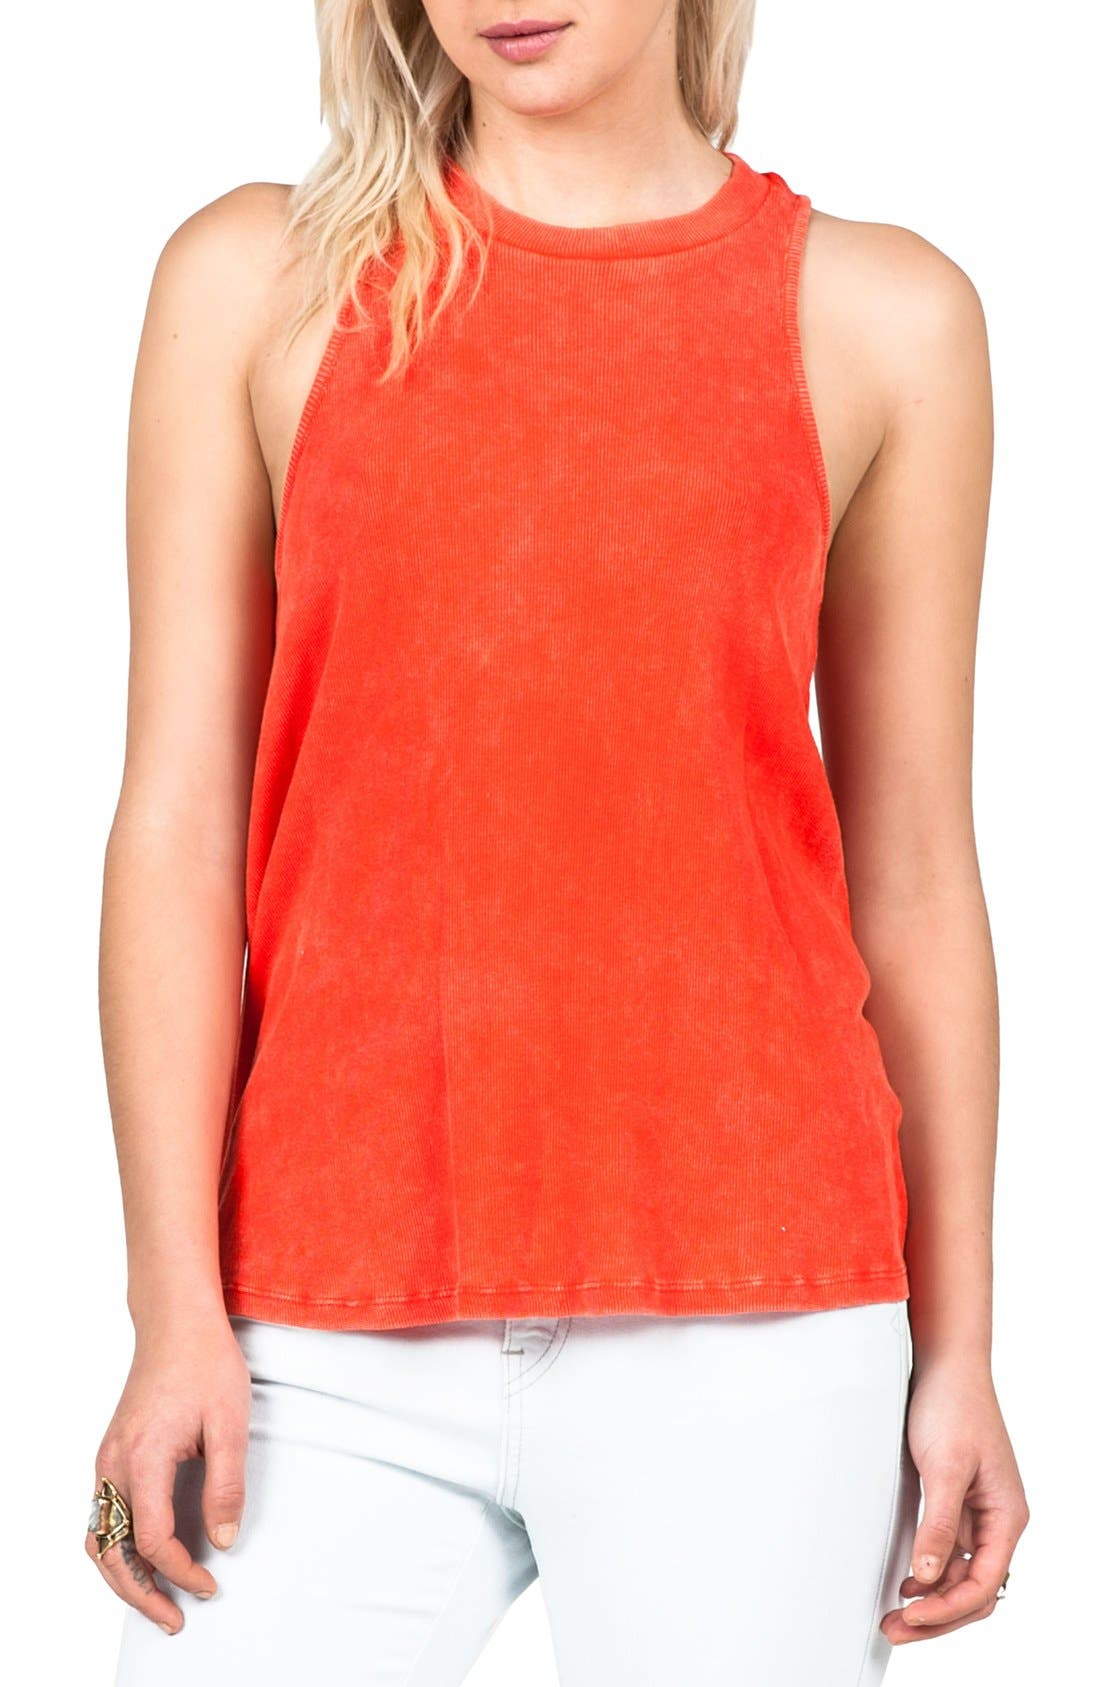 Main Image - Volcom 'Cover Your Basics' Ribbed Racerback Tank